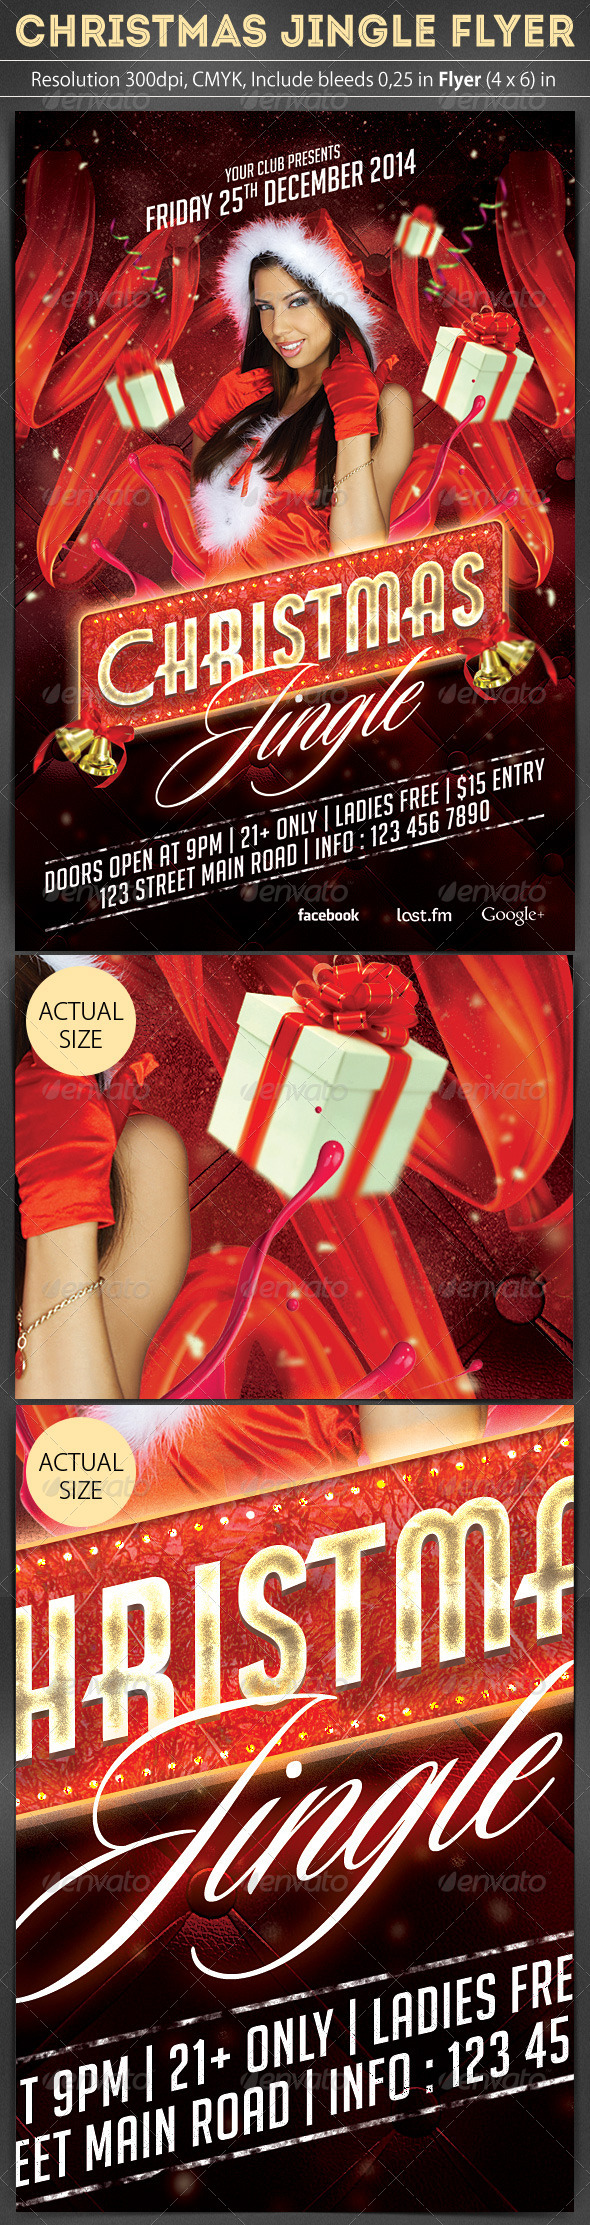 Christmas Jingle Flyer Template - Clubs & Parties Events